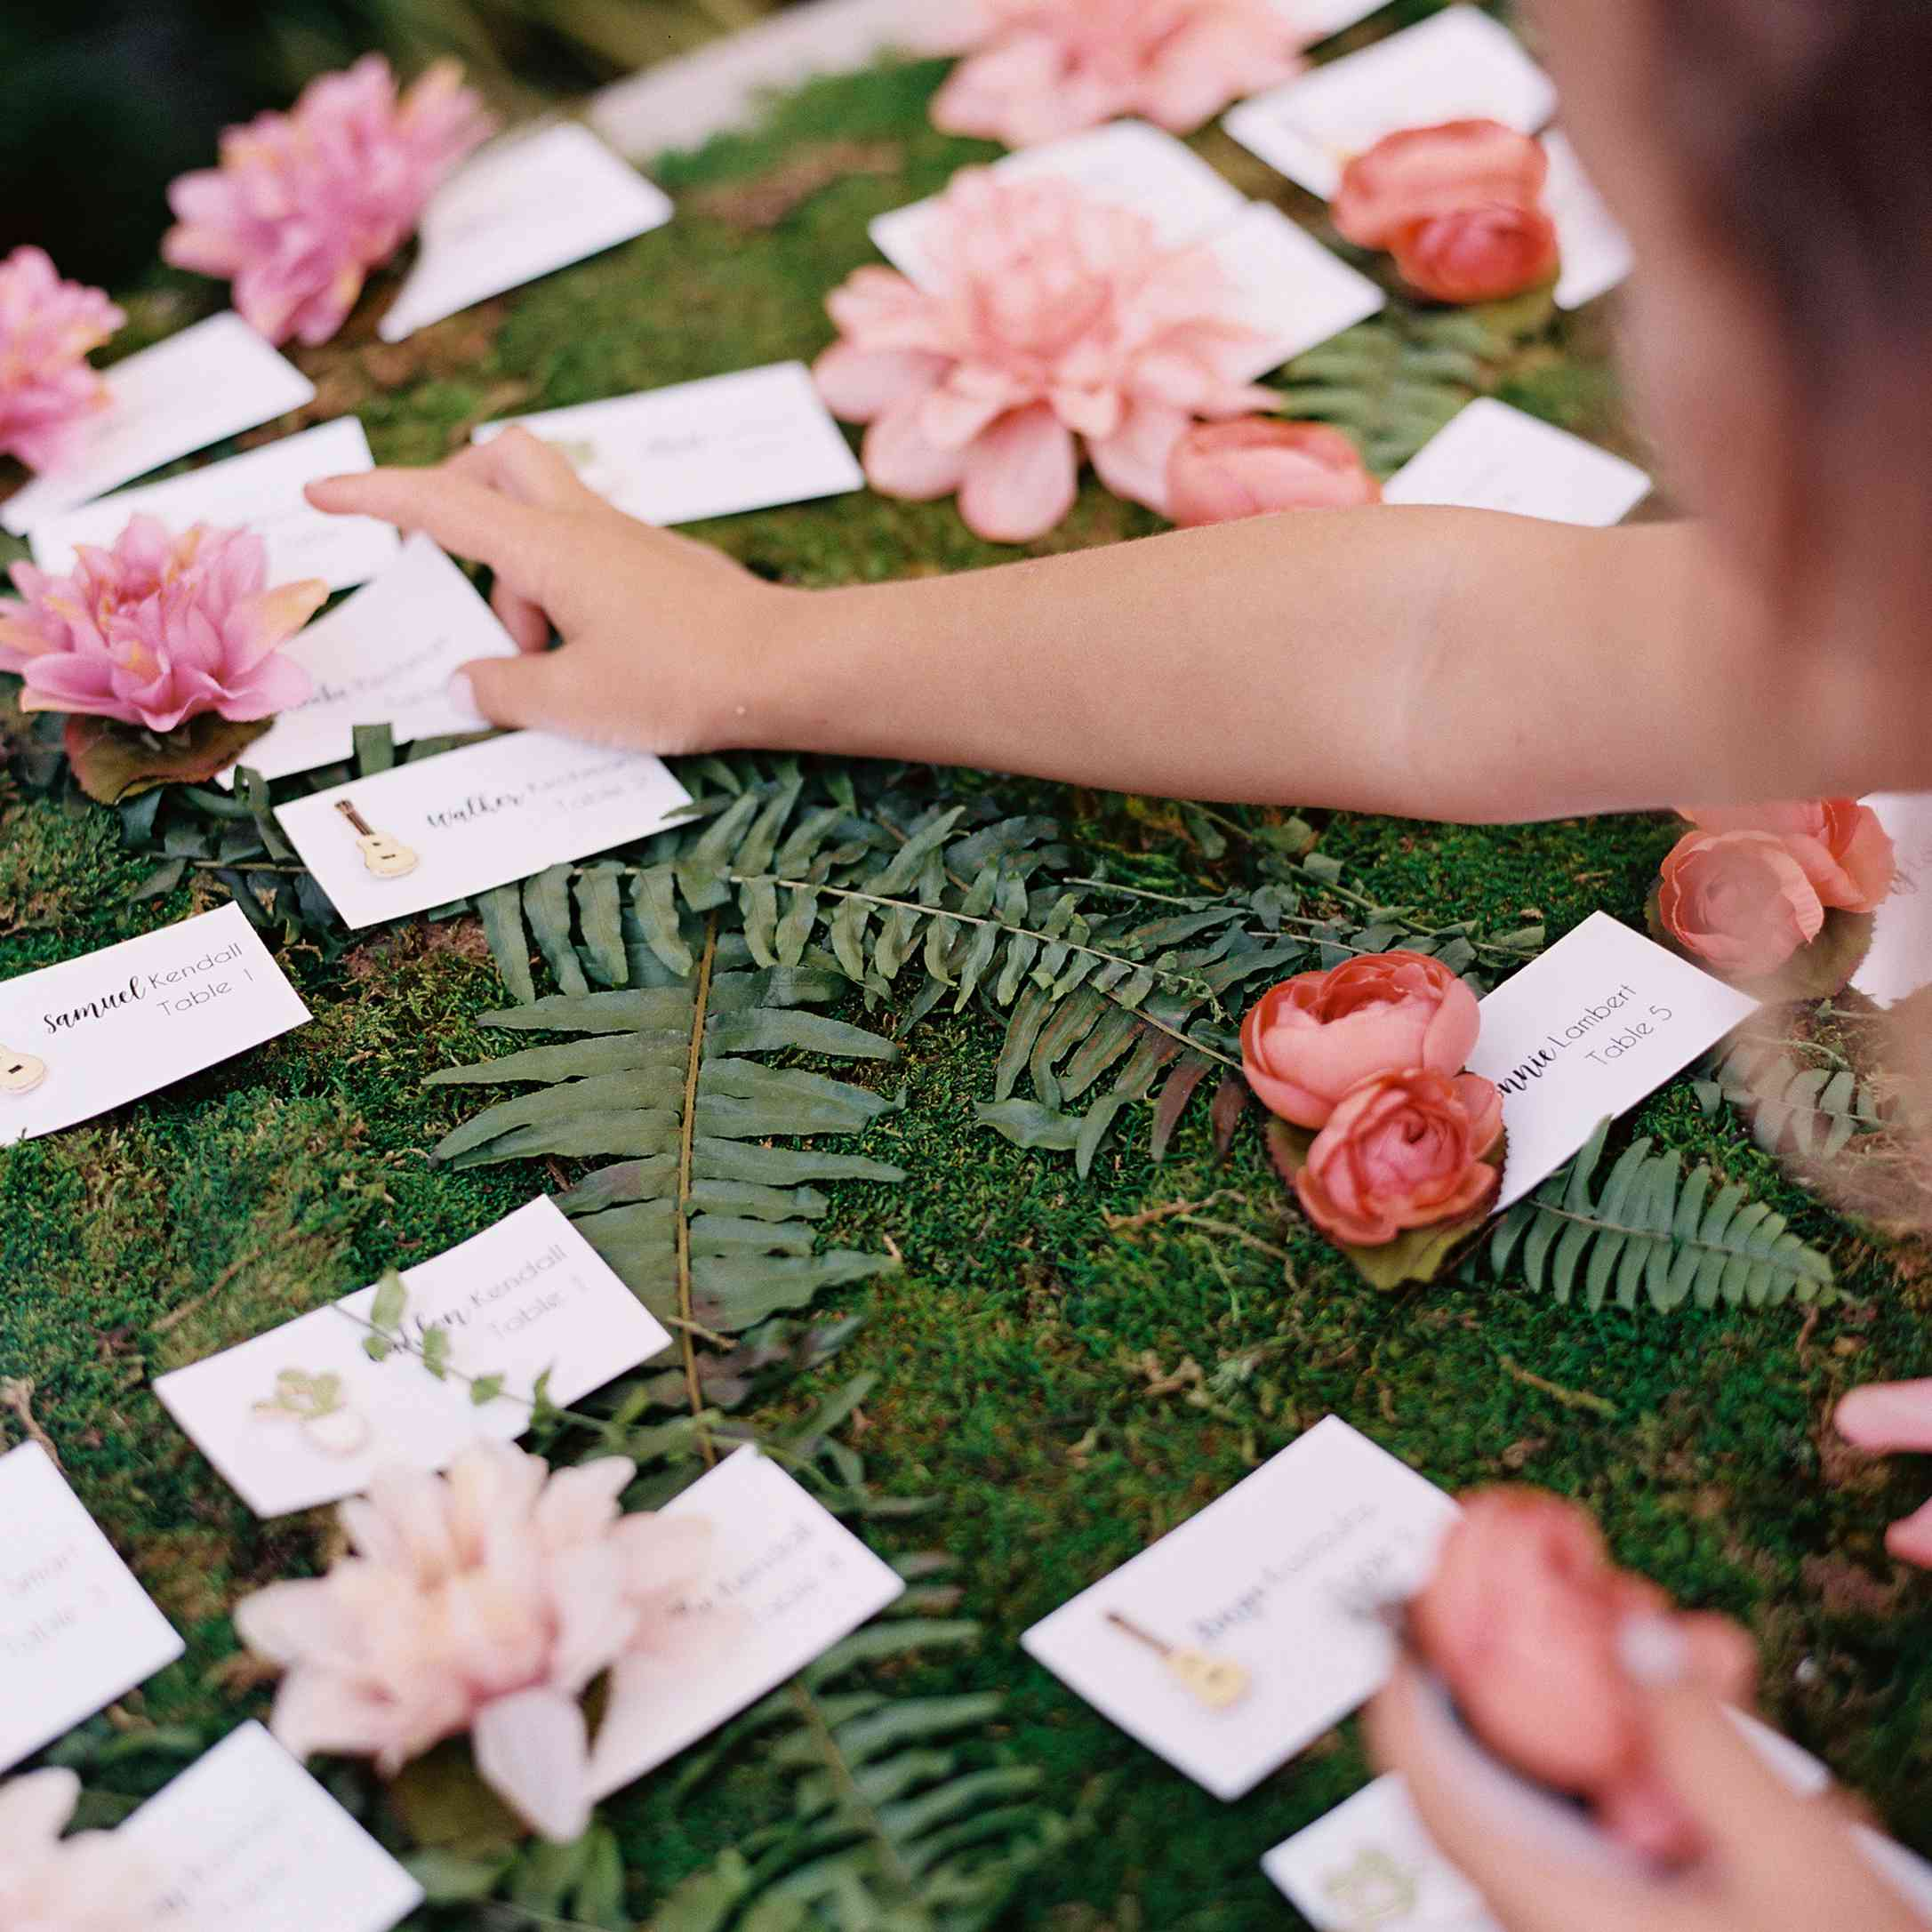 Guests finding seating assignments